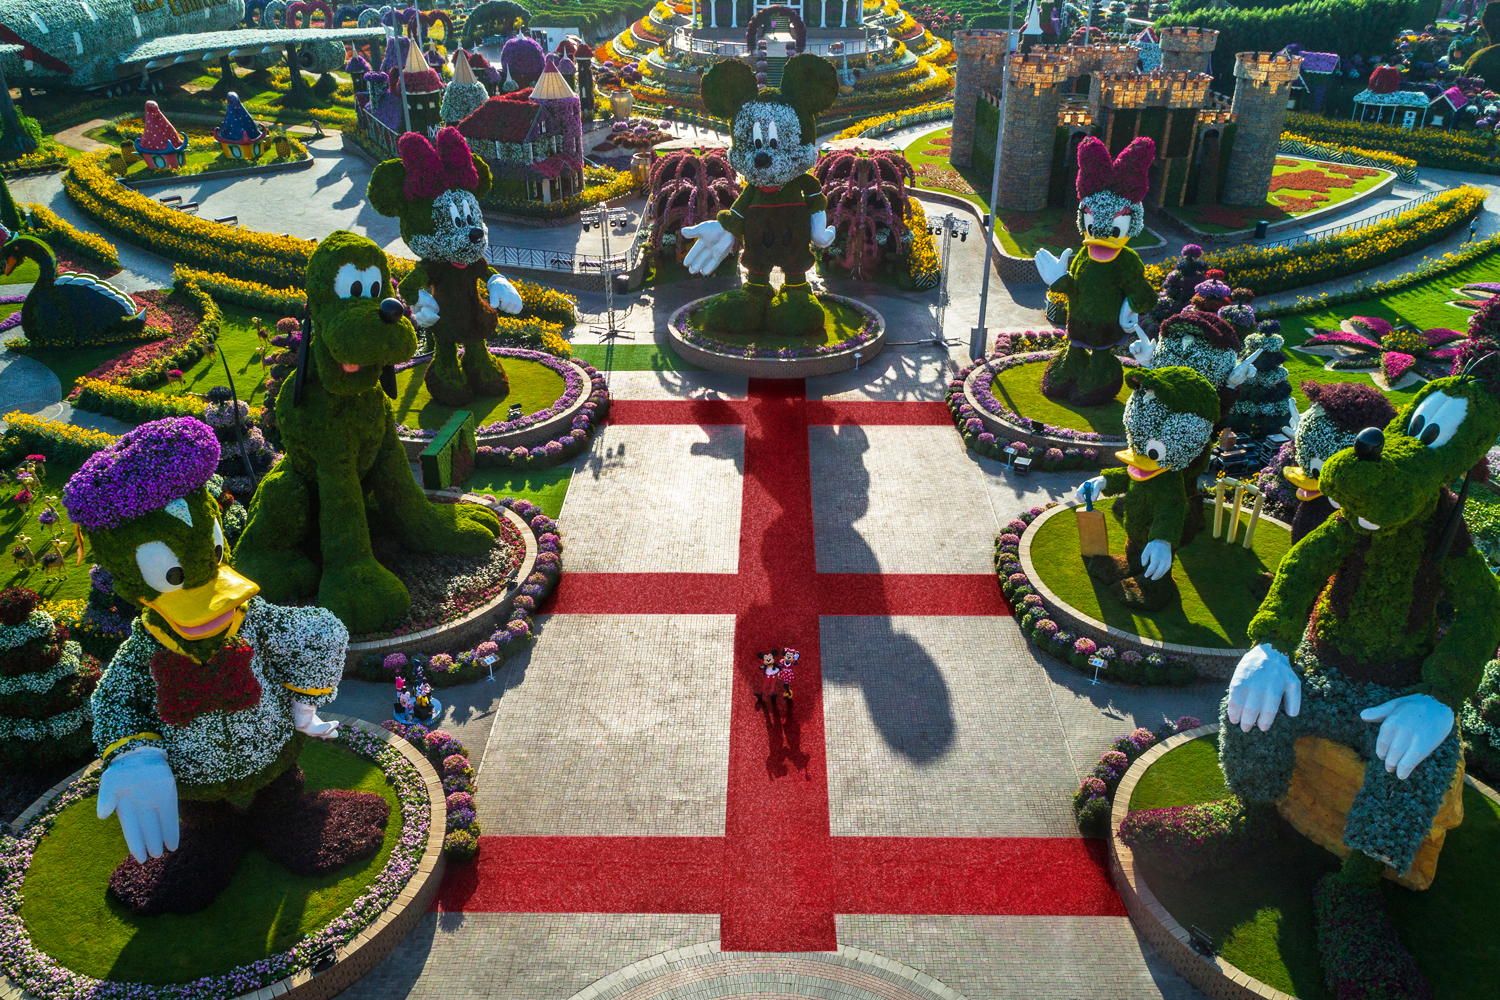 Dubai Miracle Garden To Make Grand Reopening In Dubai This Weekend Things To Do Culture Kids Time Out Dubai